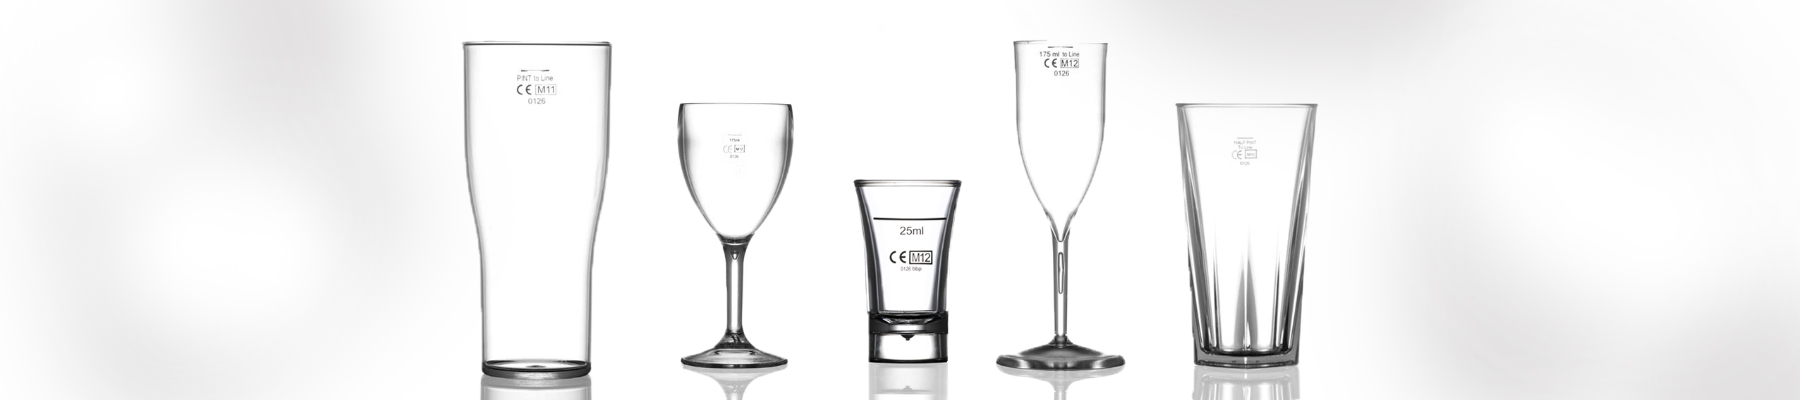 ce marked and lined plastic glasses